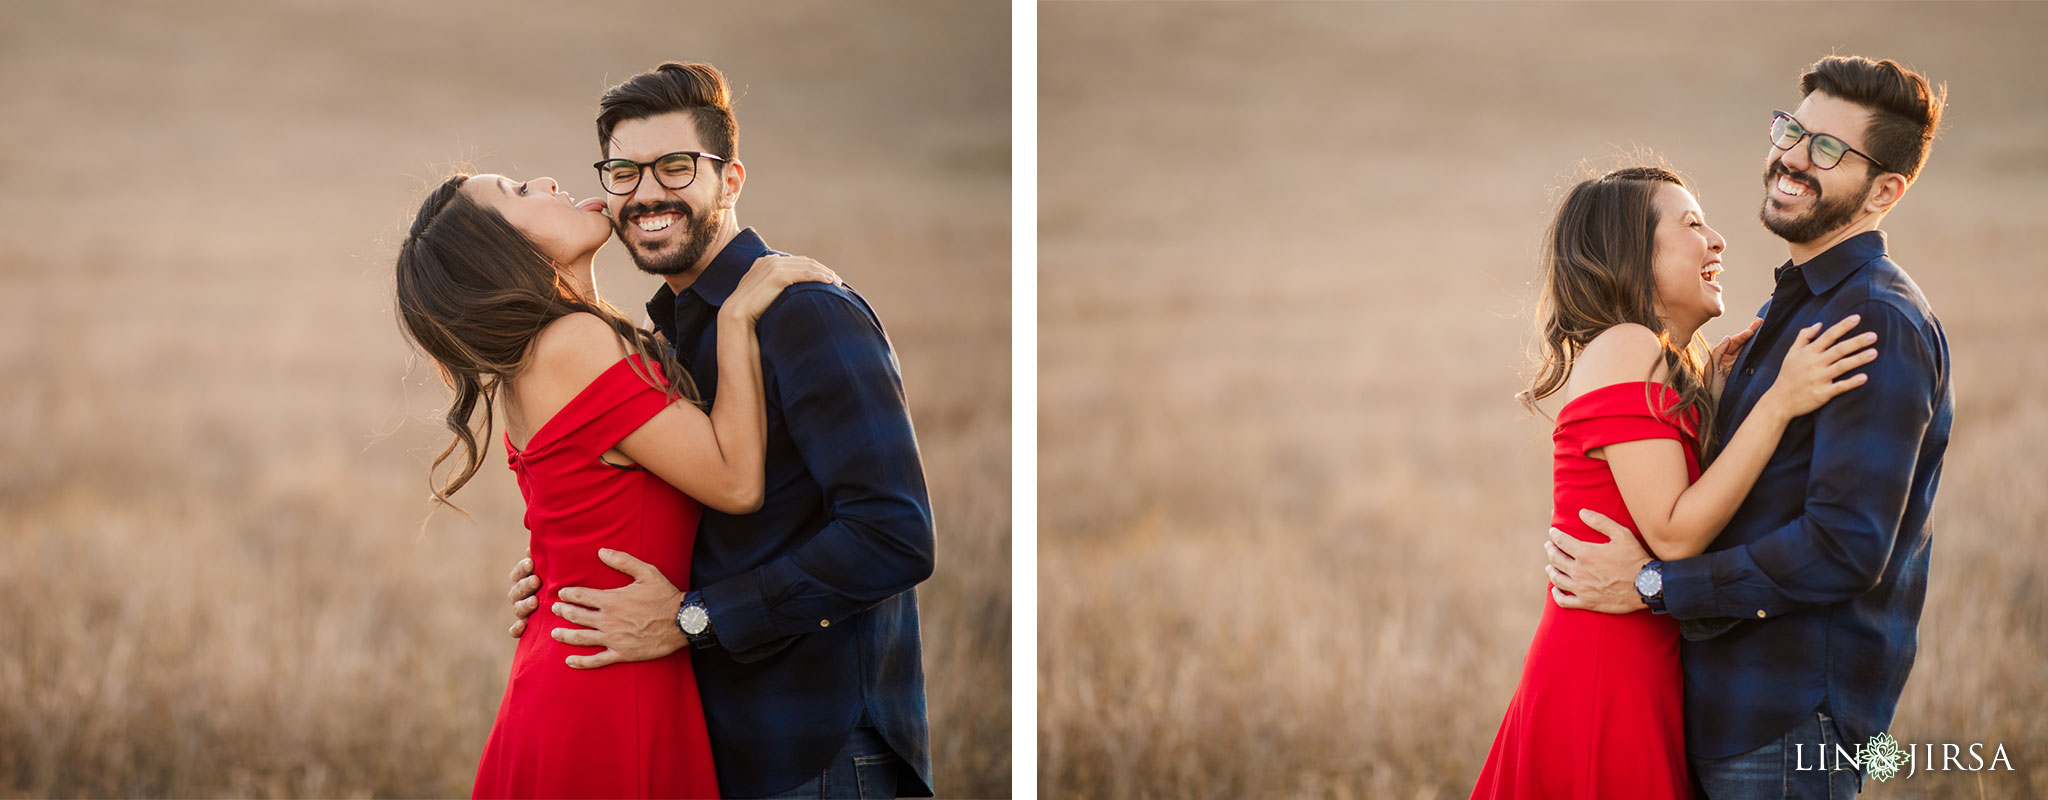 015 jeffrey open space engagement photography